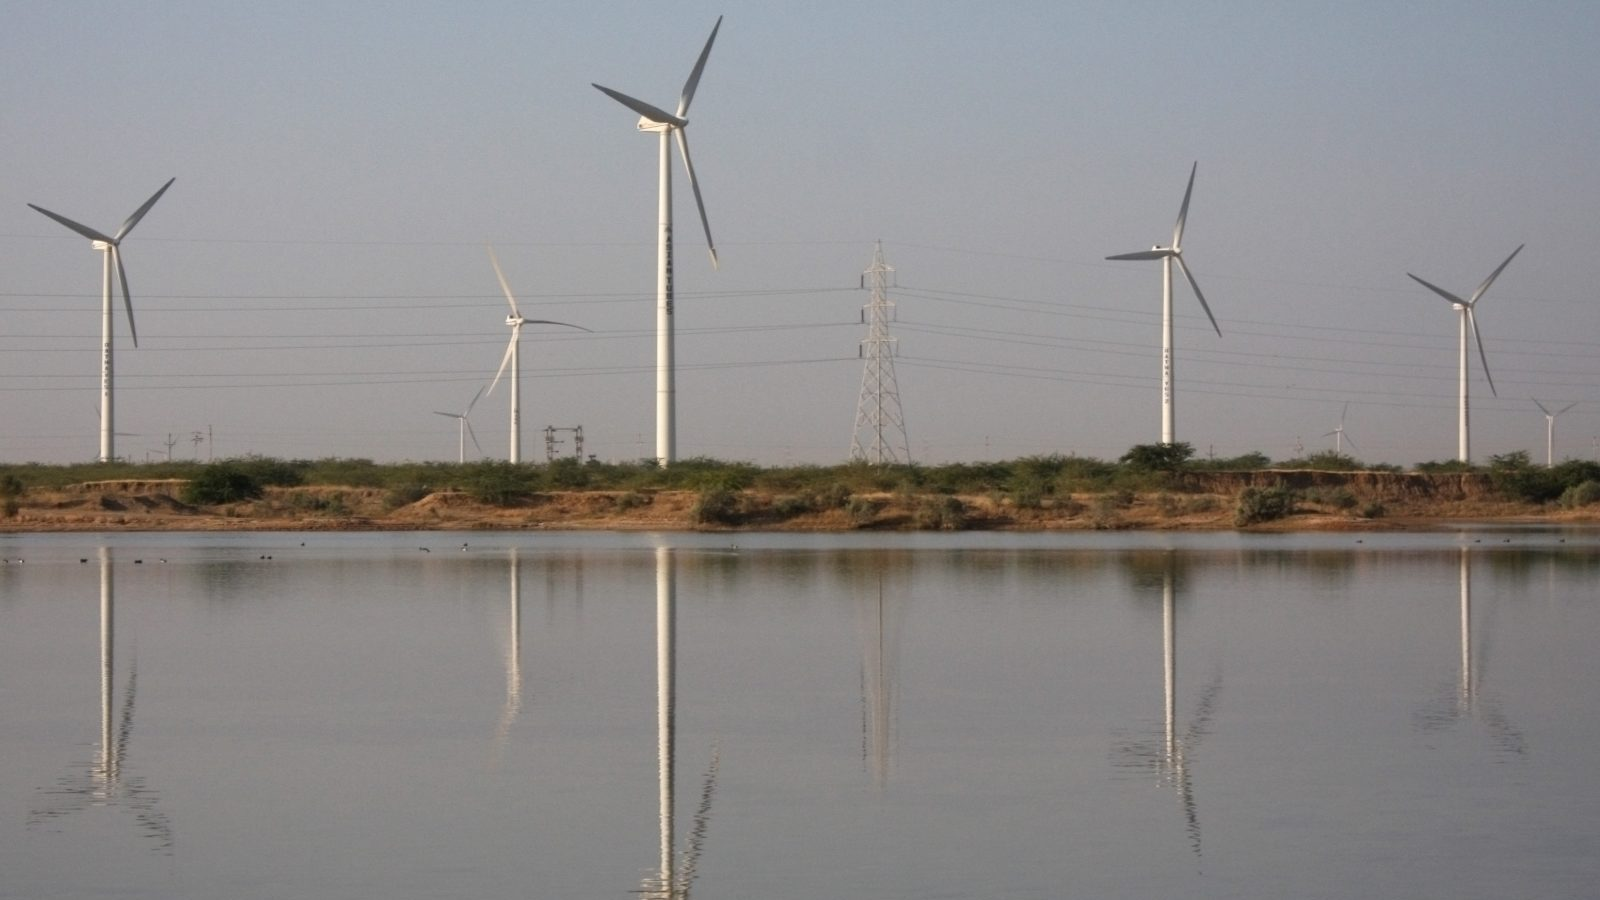 A view of power generating wind turbines at Suzlon wind farm in Surajbari village, about 275 km (171 miles) west of the western Indian city of Ahmedabad December 14, 2009. REUTERS/Amit Dave (INDIA - Tags: ENERGY ENVIRONMENT BUSINESS POLITICS) - GM1E5CF02TM01